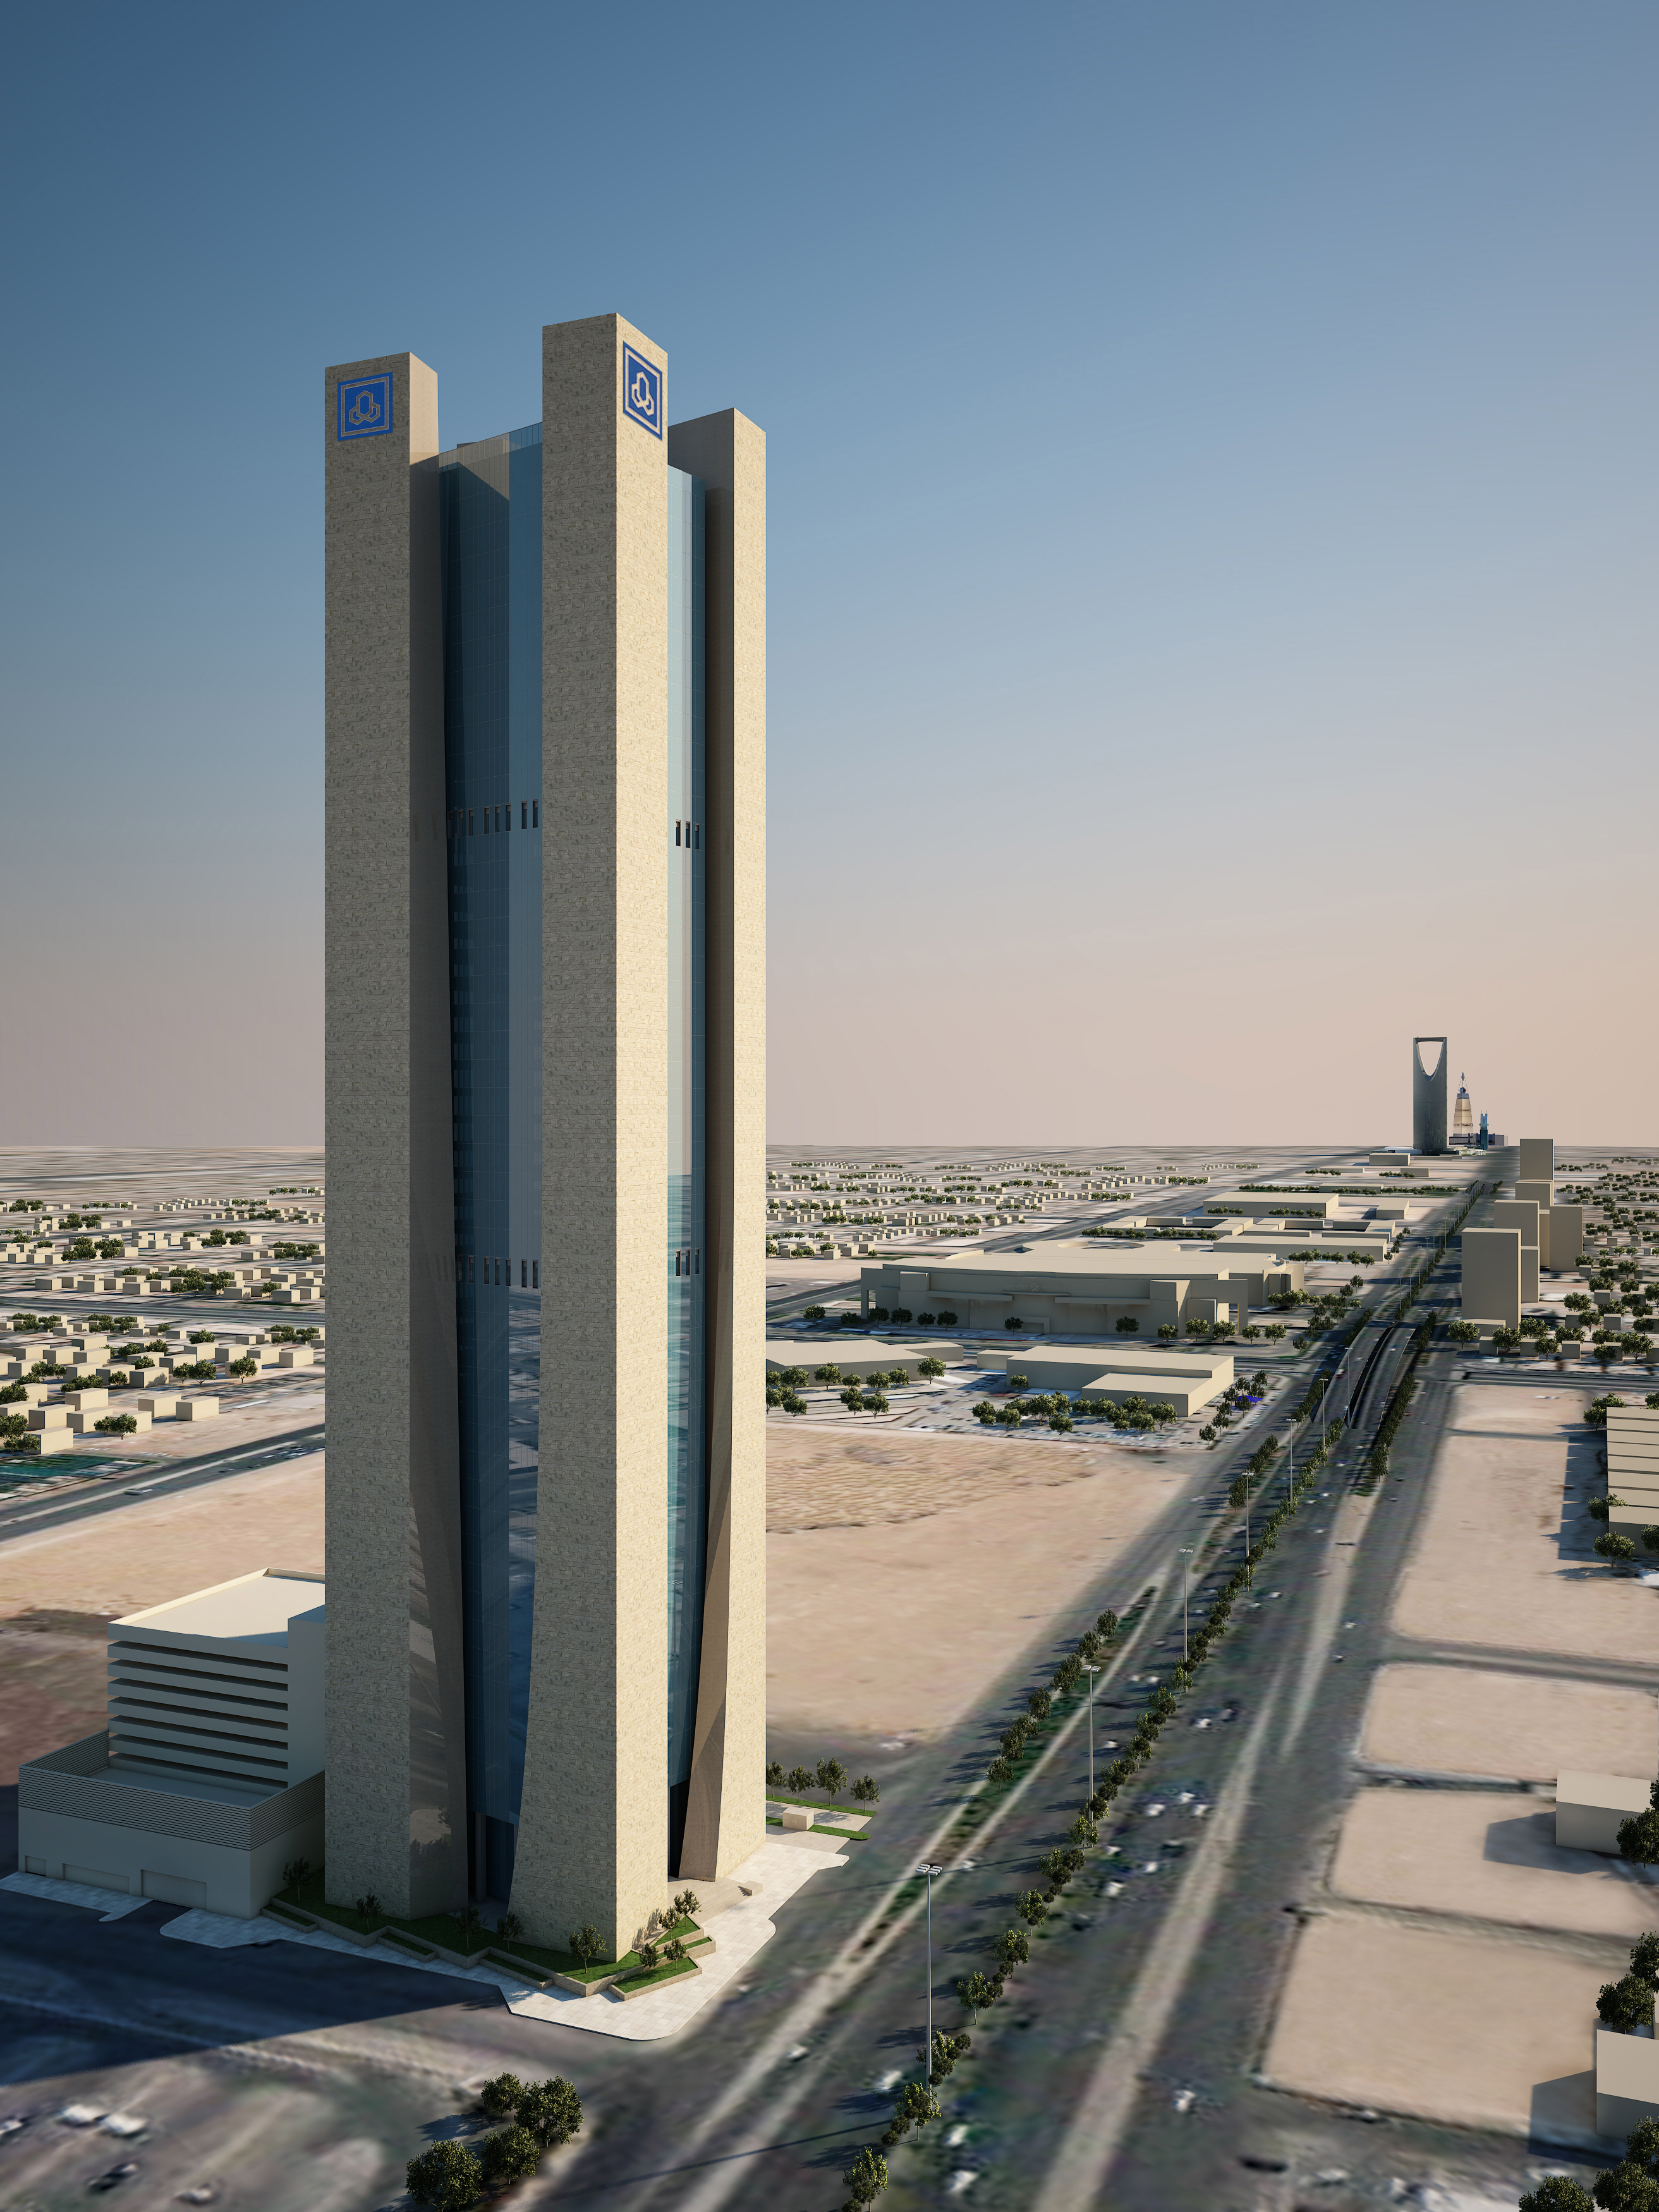 View of Riyadh, with the Al Rajhi Bank